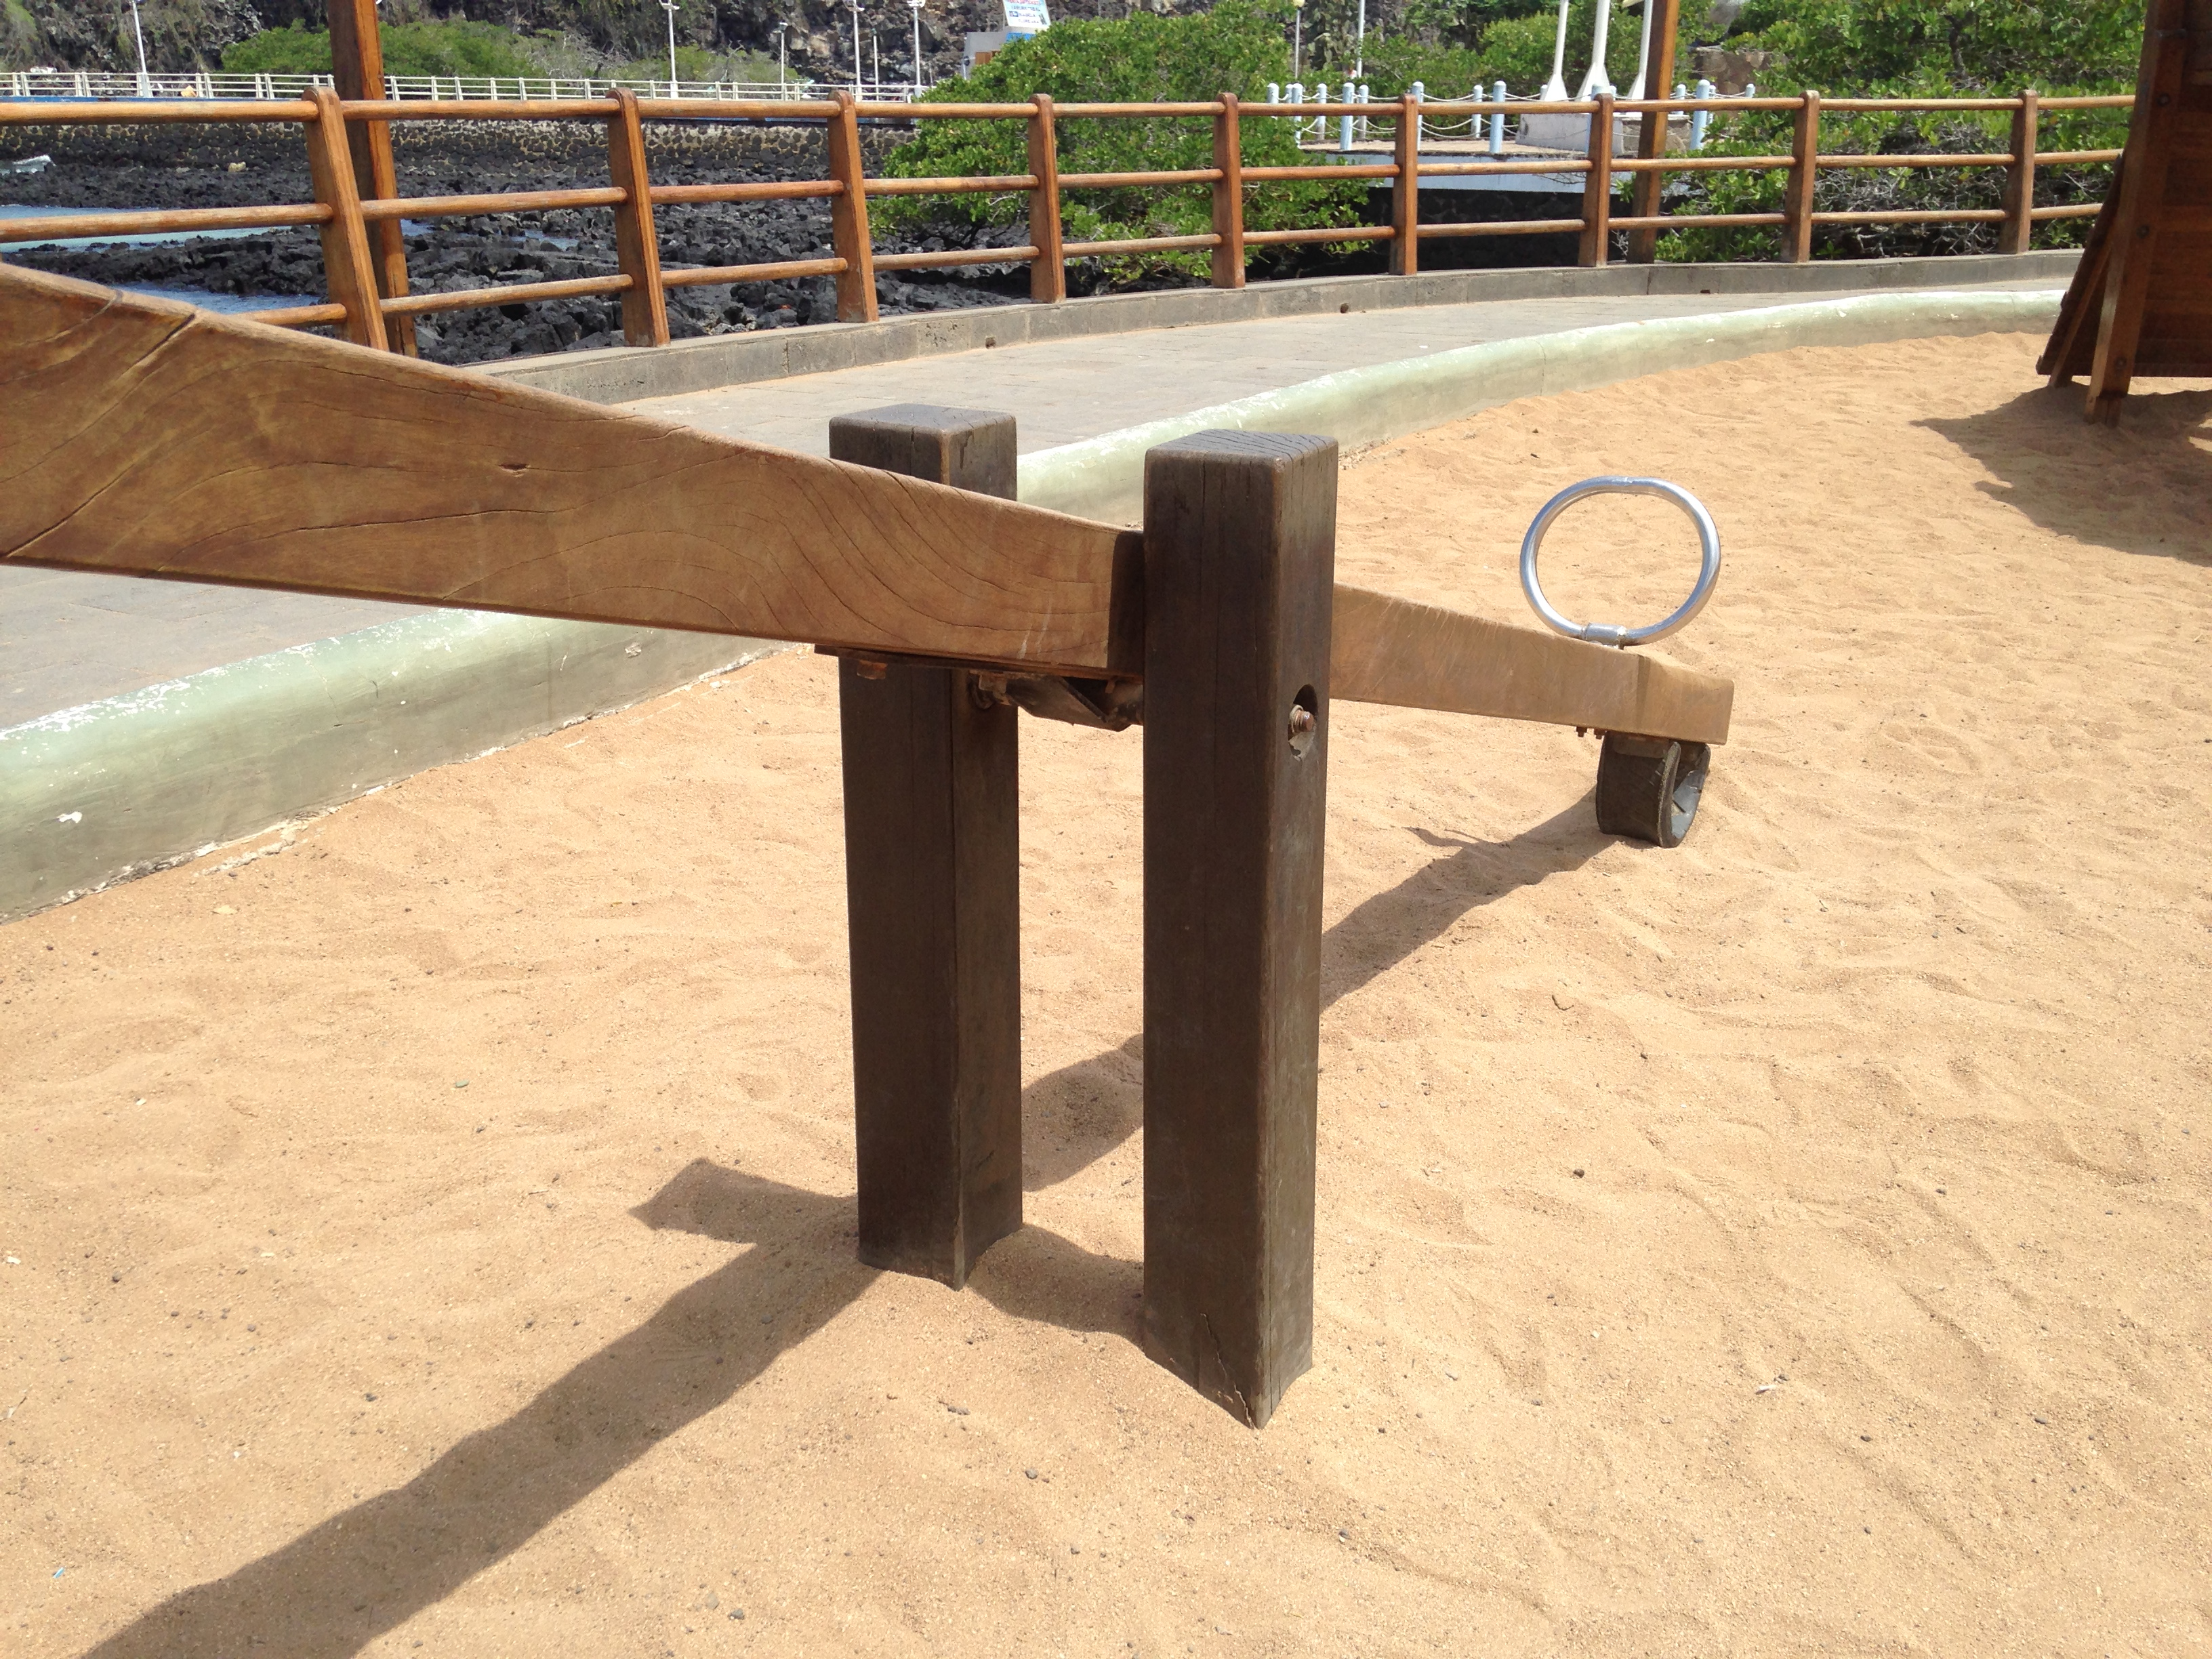 Easy to construct diy teeter totters seesaws tired for Seesaw plans designs